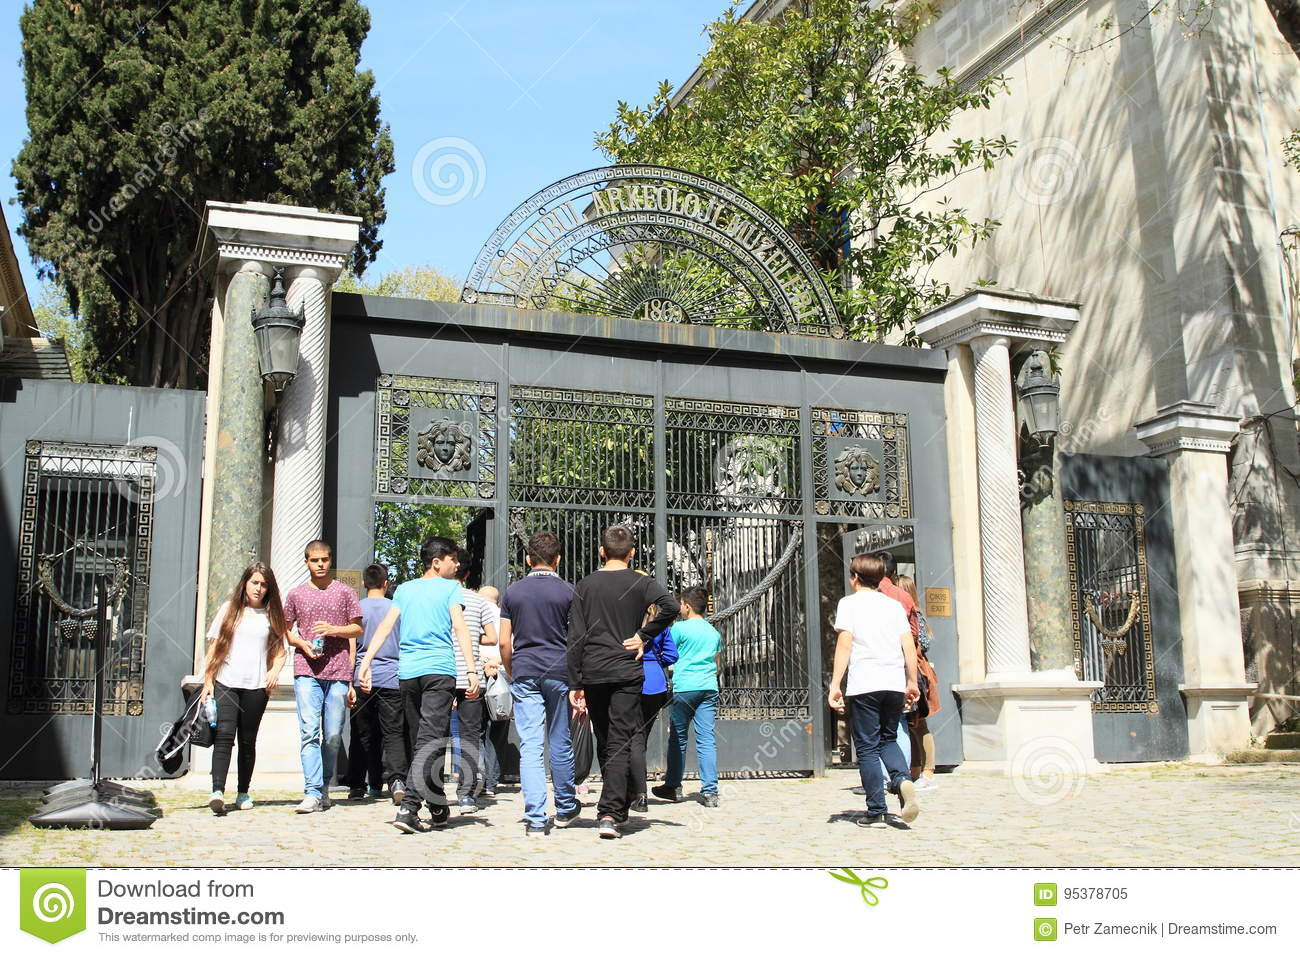 Tourists waiting in front of entrance to museum in Istanbul